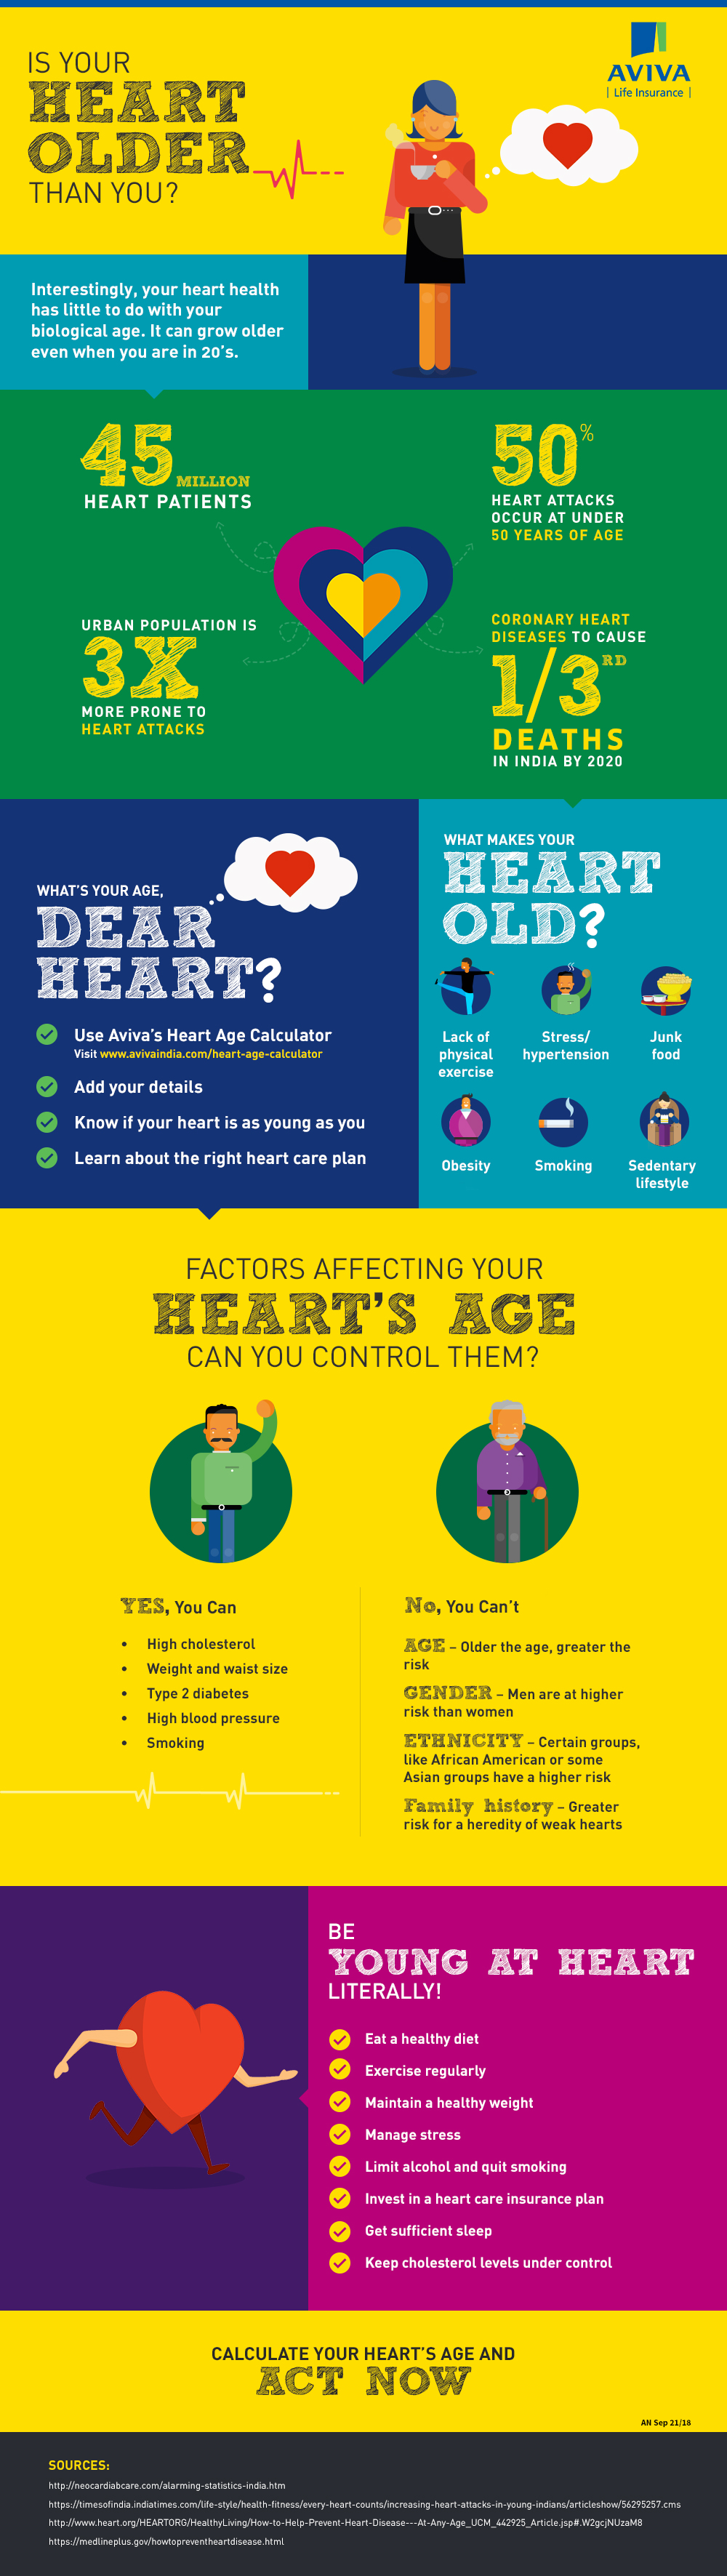 How to take care of your heart? | Aviva India Blog